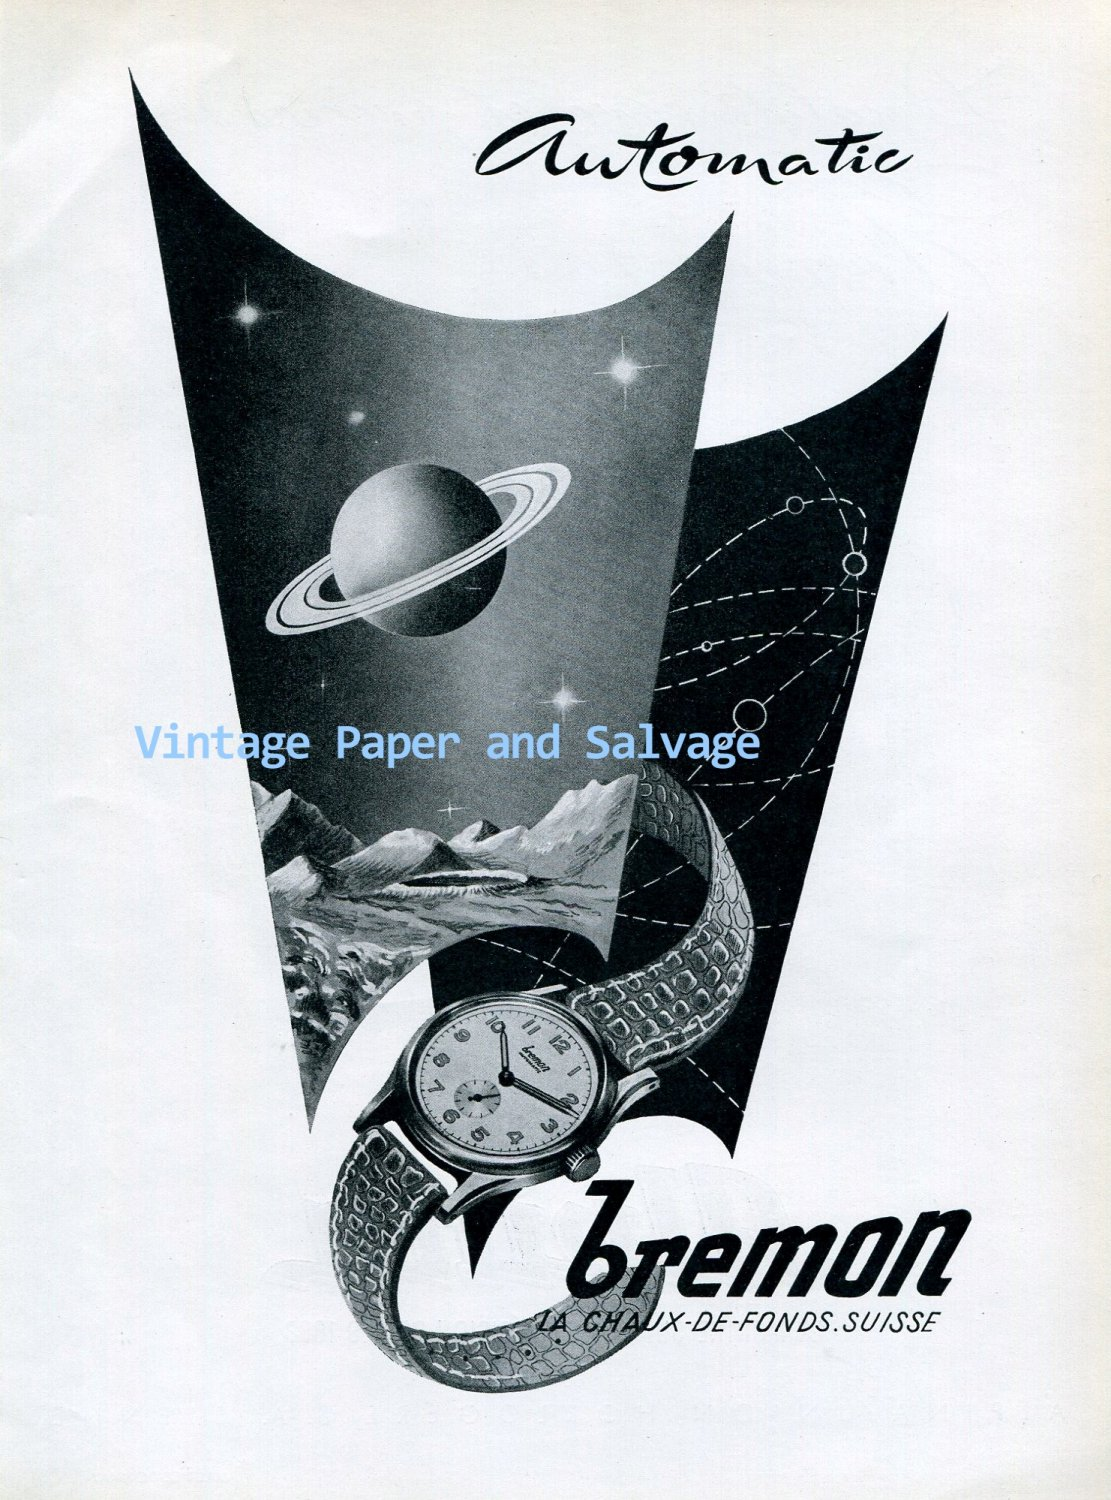 Vintage 1945 Bremon Automatic Watch Advert 1940s Swiss Ad Suisse Switzerland Schweiz